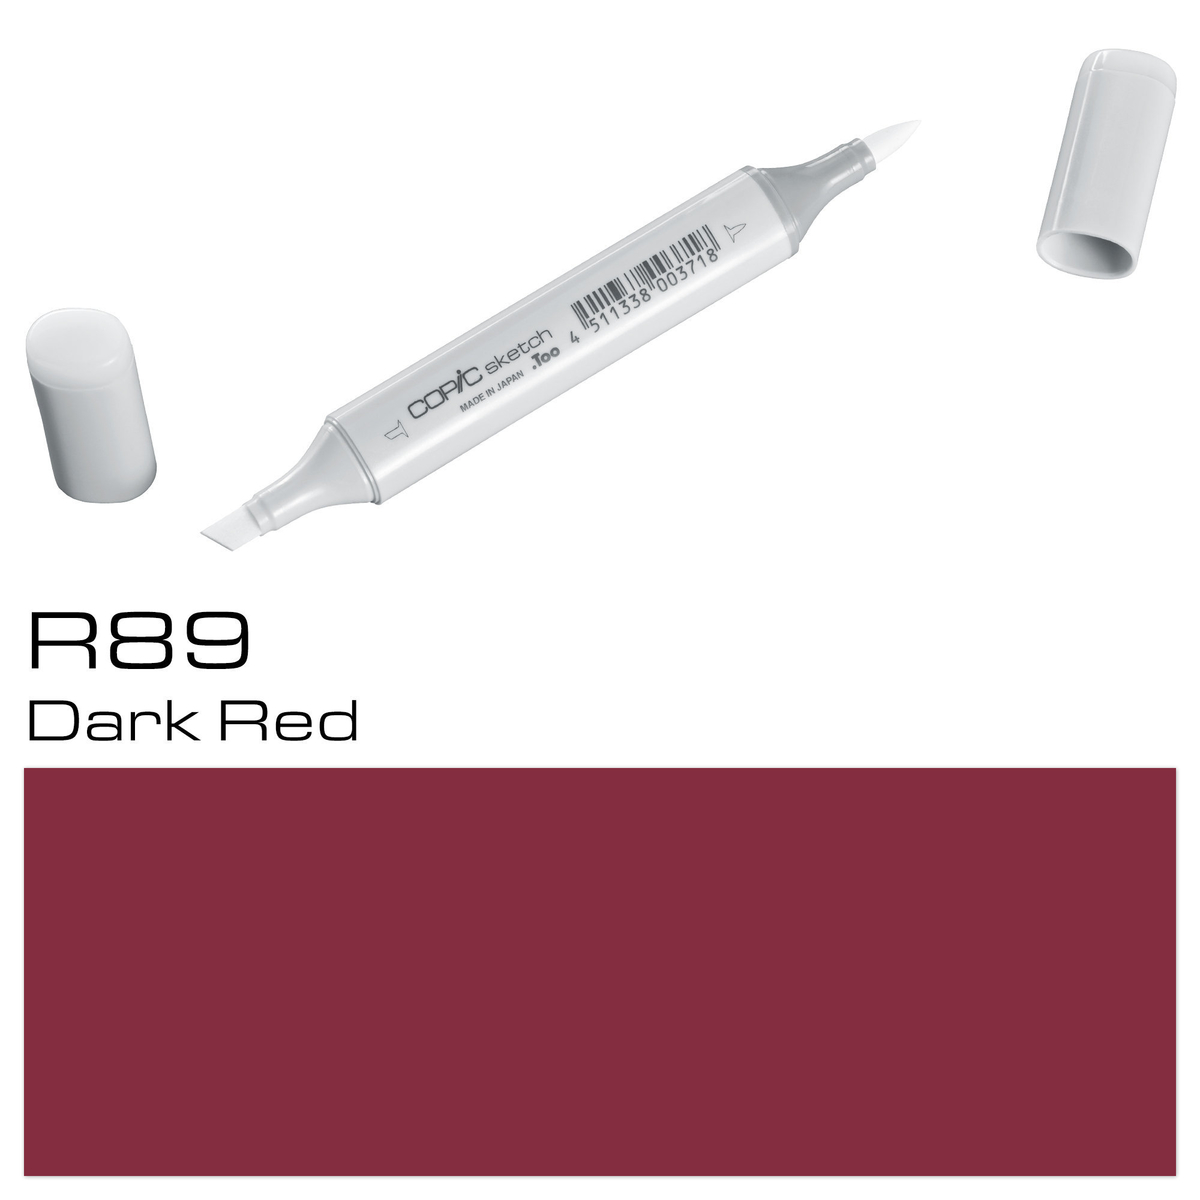 Copic Sketch R 89 dark red